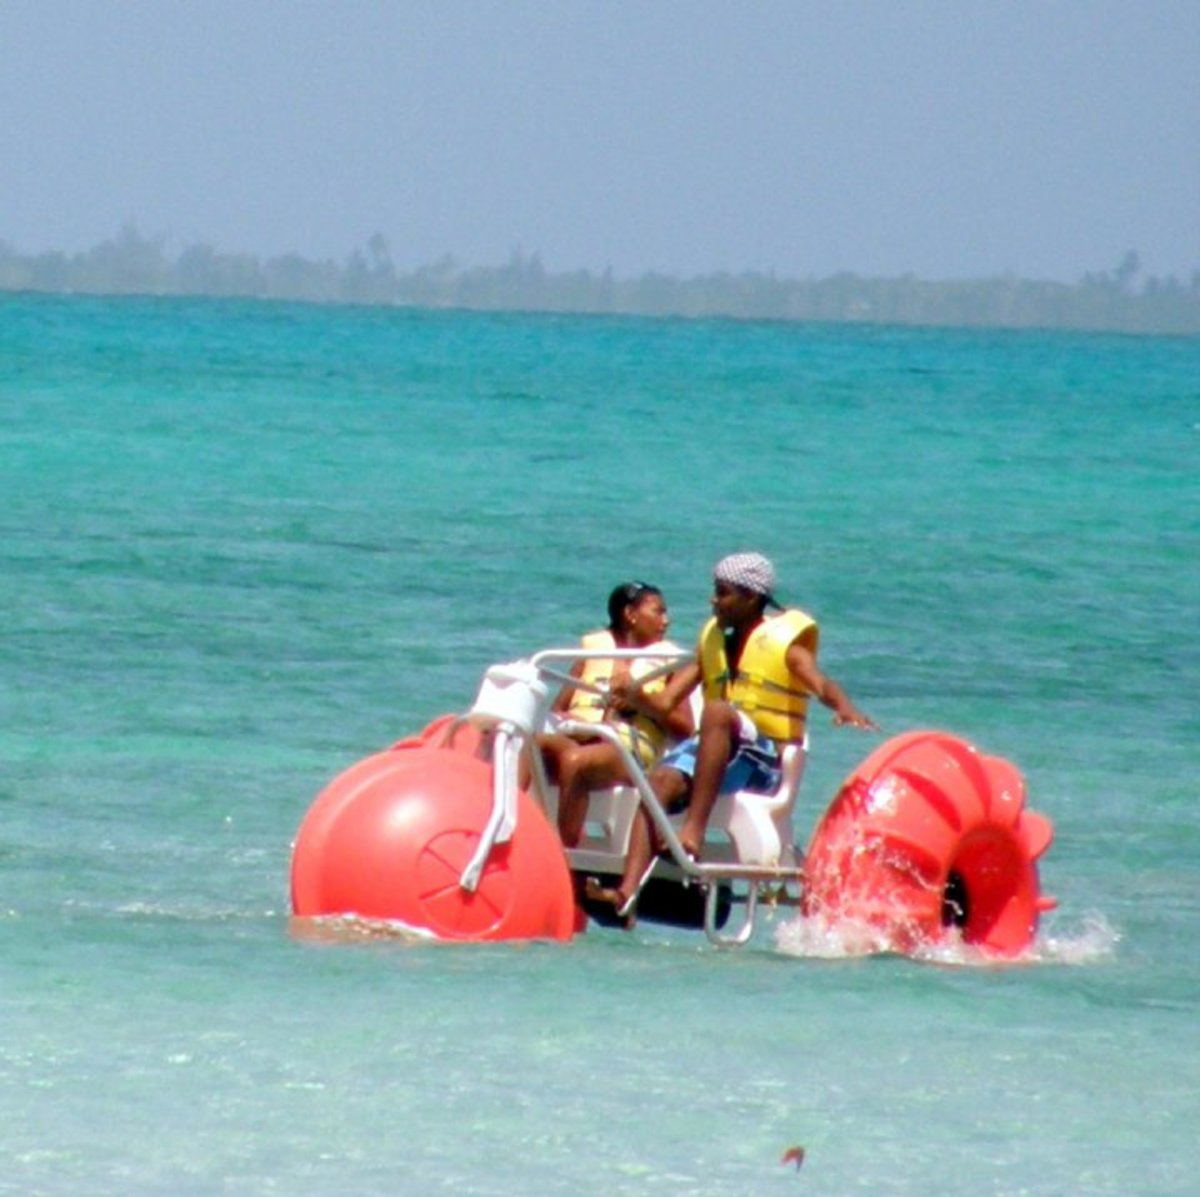 My older kids enjoying one of the many water sports offered at Rum Point/Cayman Kai